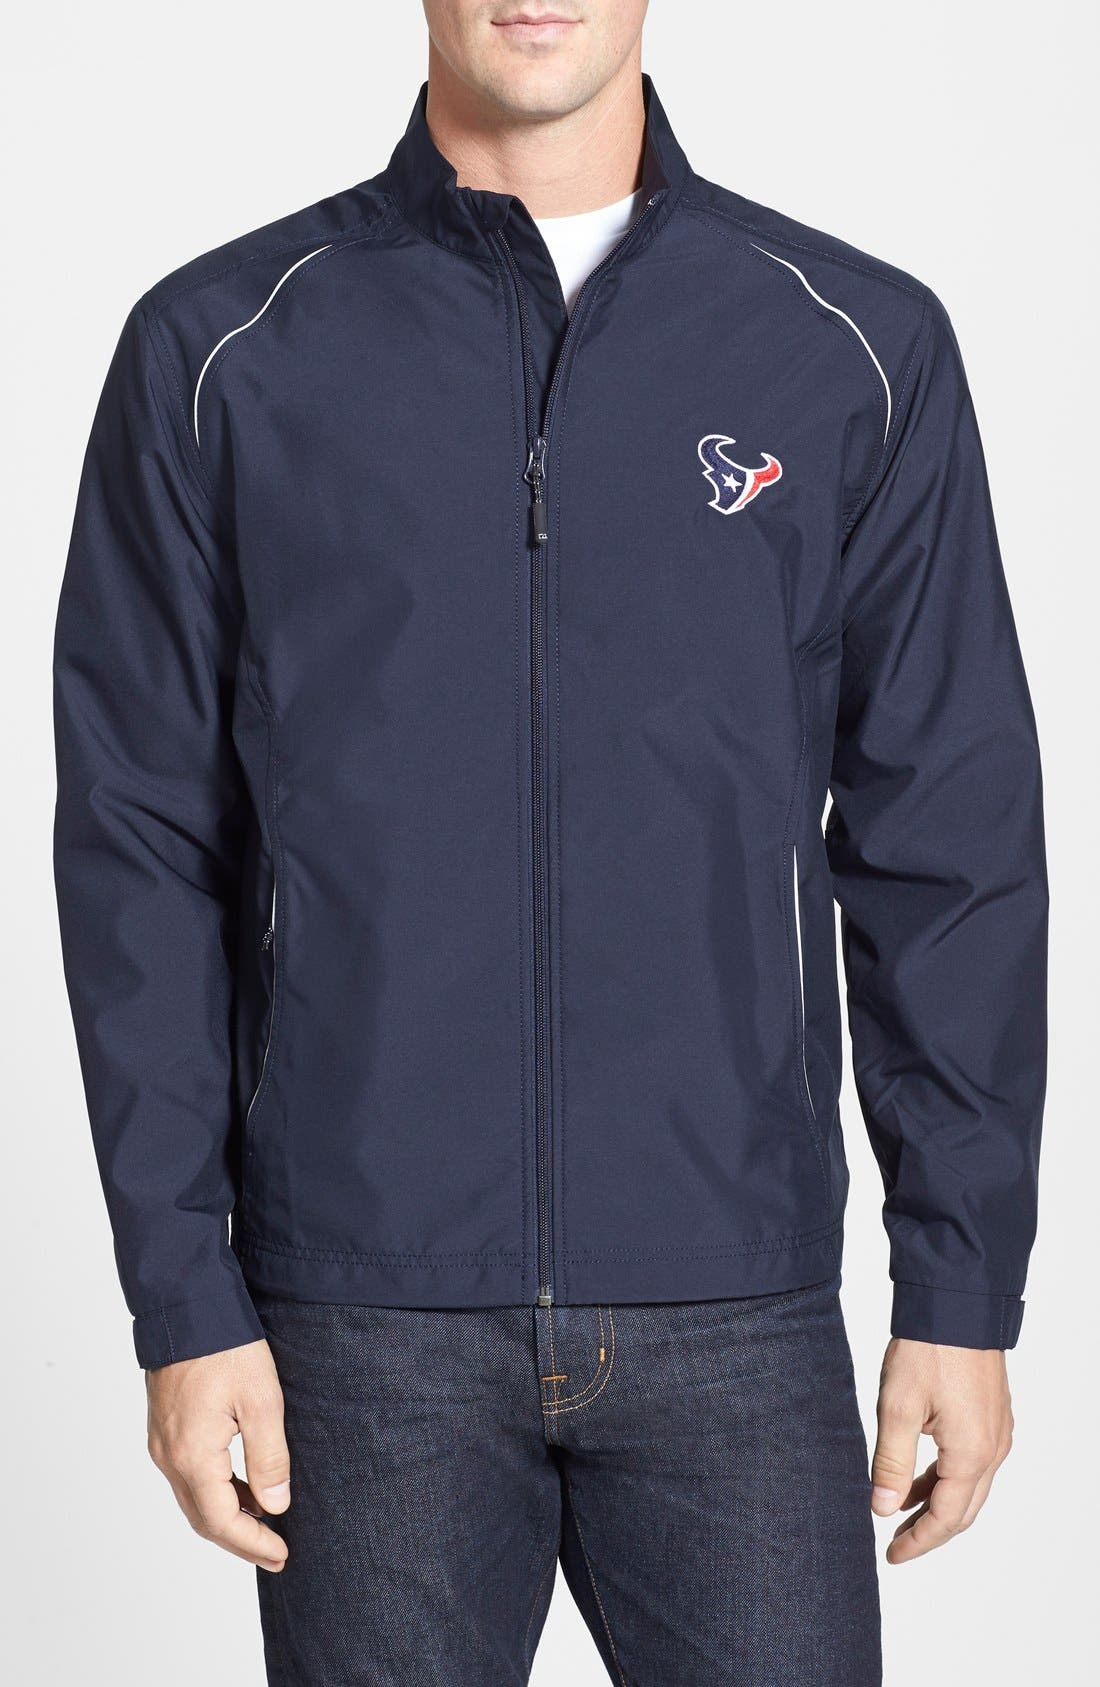 Main Image - Cutter & Buck Houston Texans - Beacon WeatherTec Wind & Water Resistant Jacket